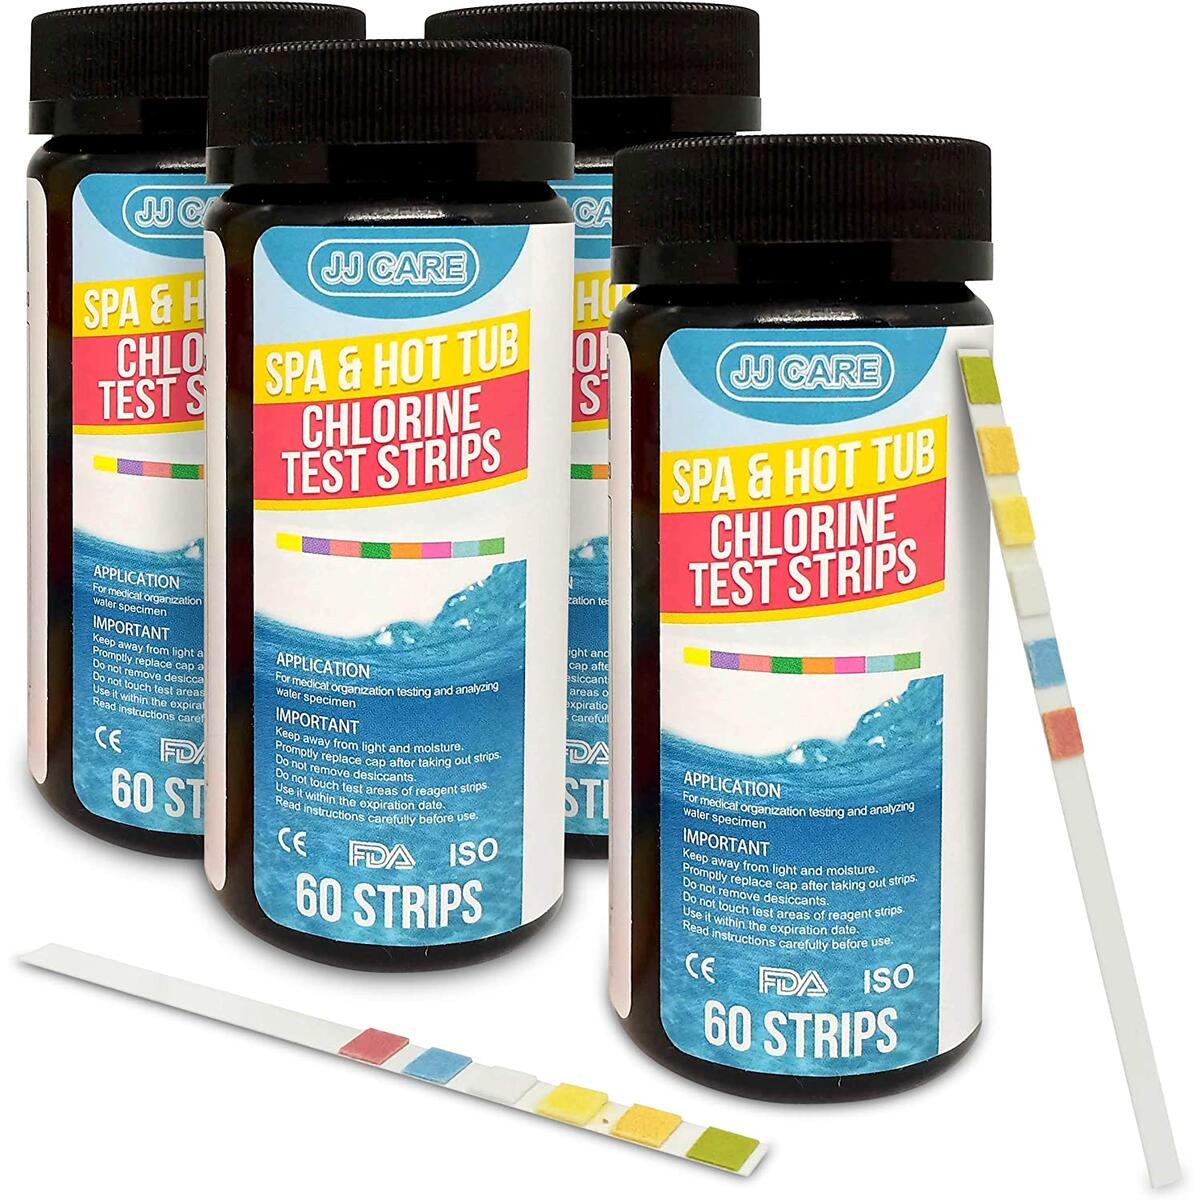 JJ CARE [240 Strips] Spa Test Strips for Hot Tubs 6-in-1 Spa Test Kit - Test Strips for Pools and Spa - Hot Tub Testing Strips - Pack of 4 Bottles